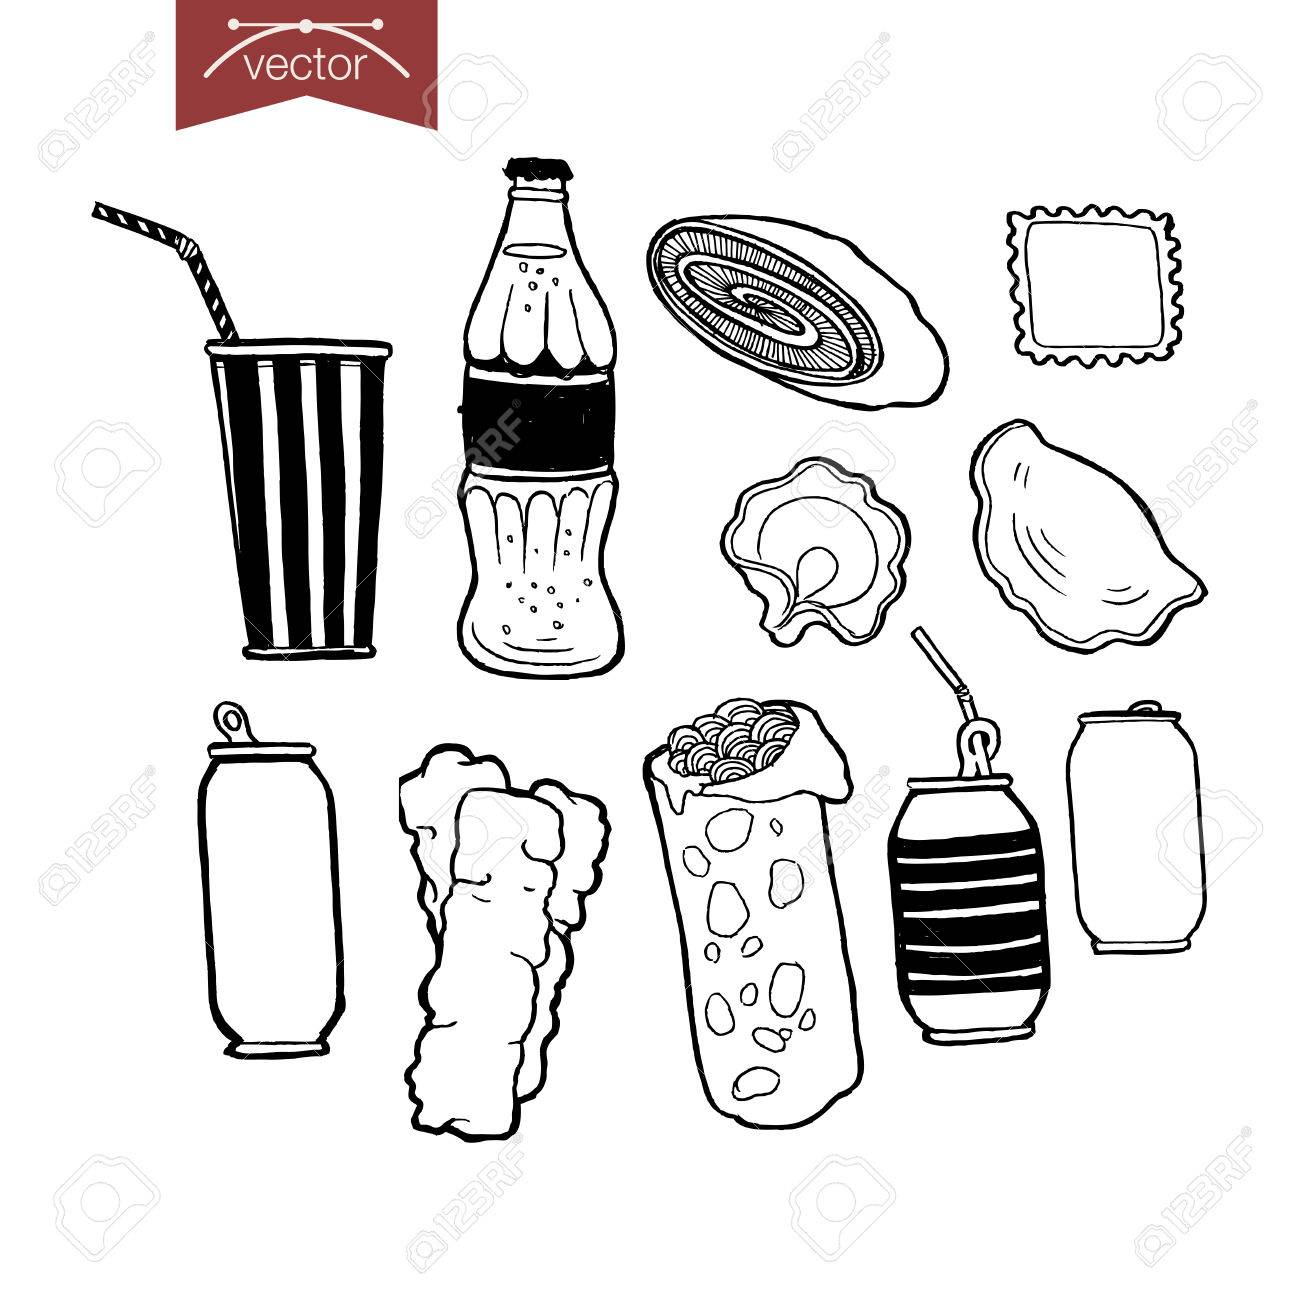 1300x1300 Engraving Vintage Hand Drawn Restaurant Menu Food Doodle Collage